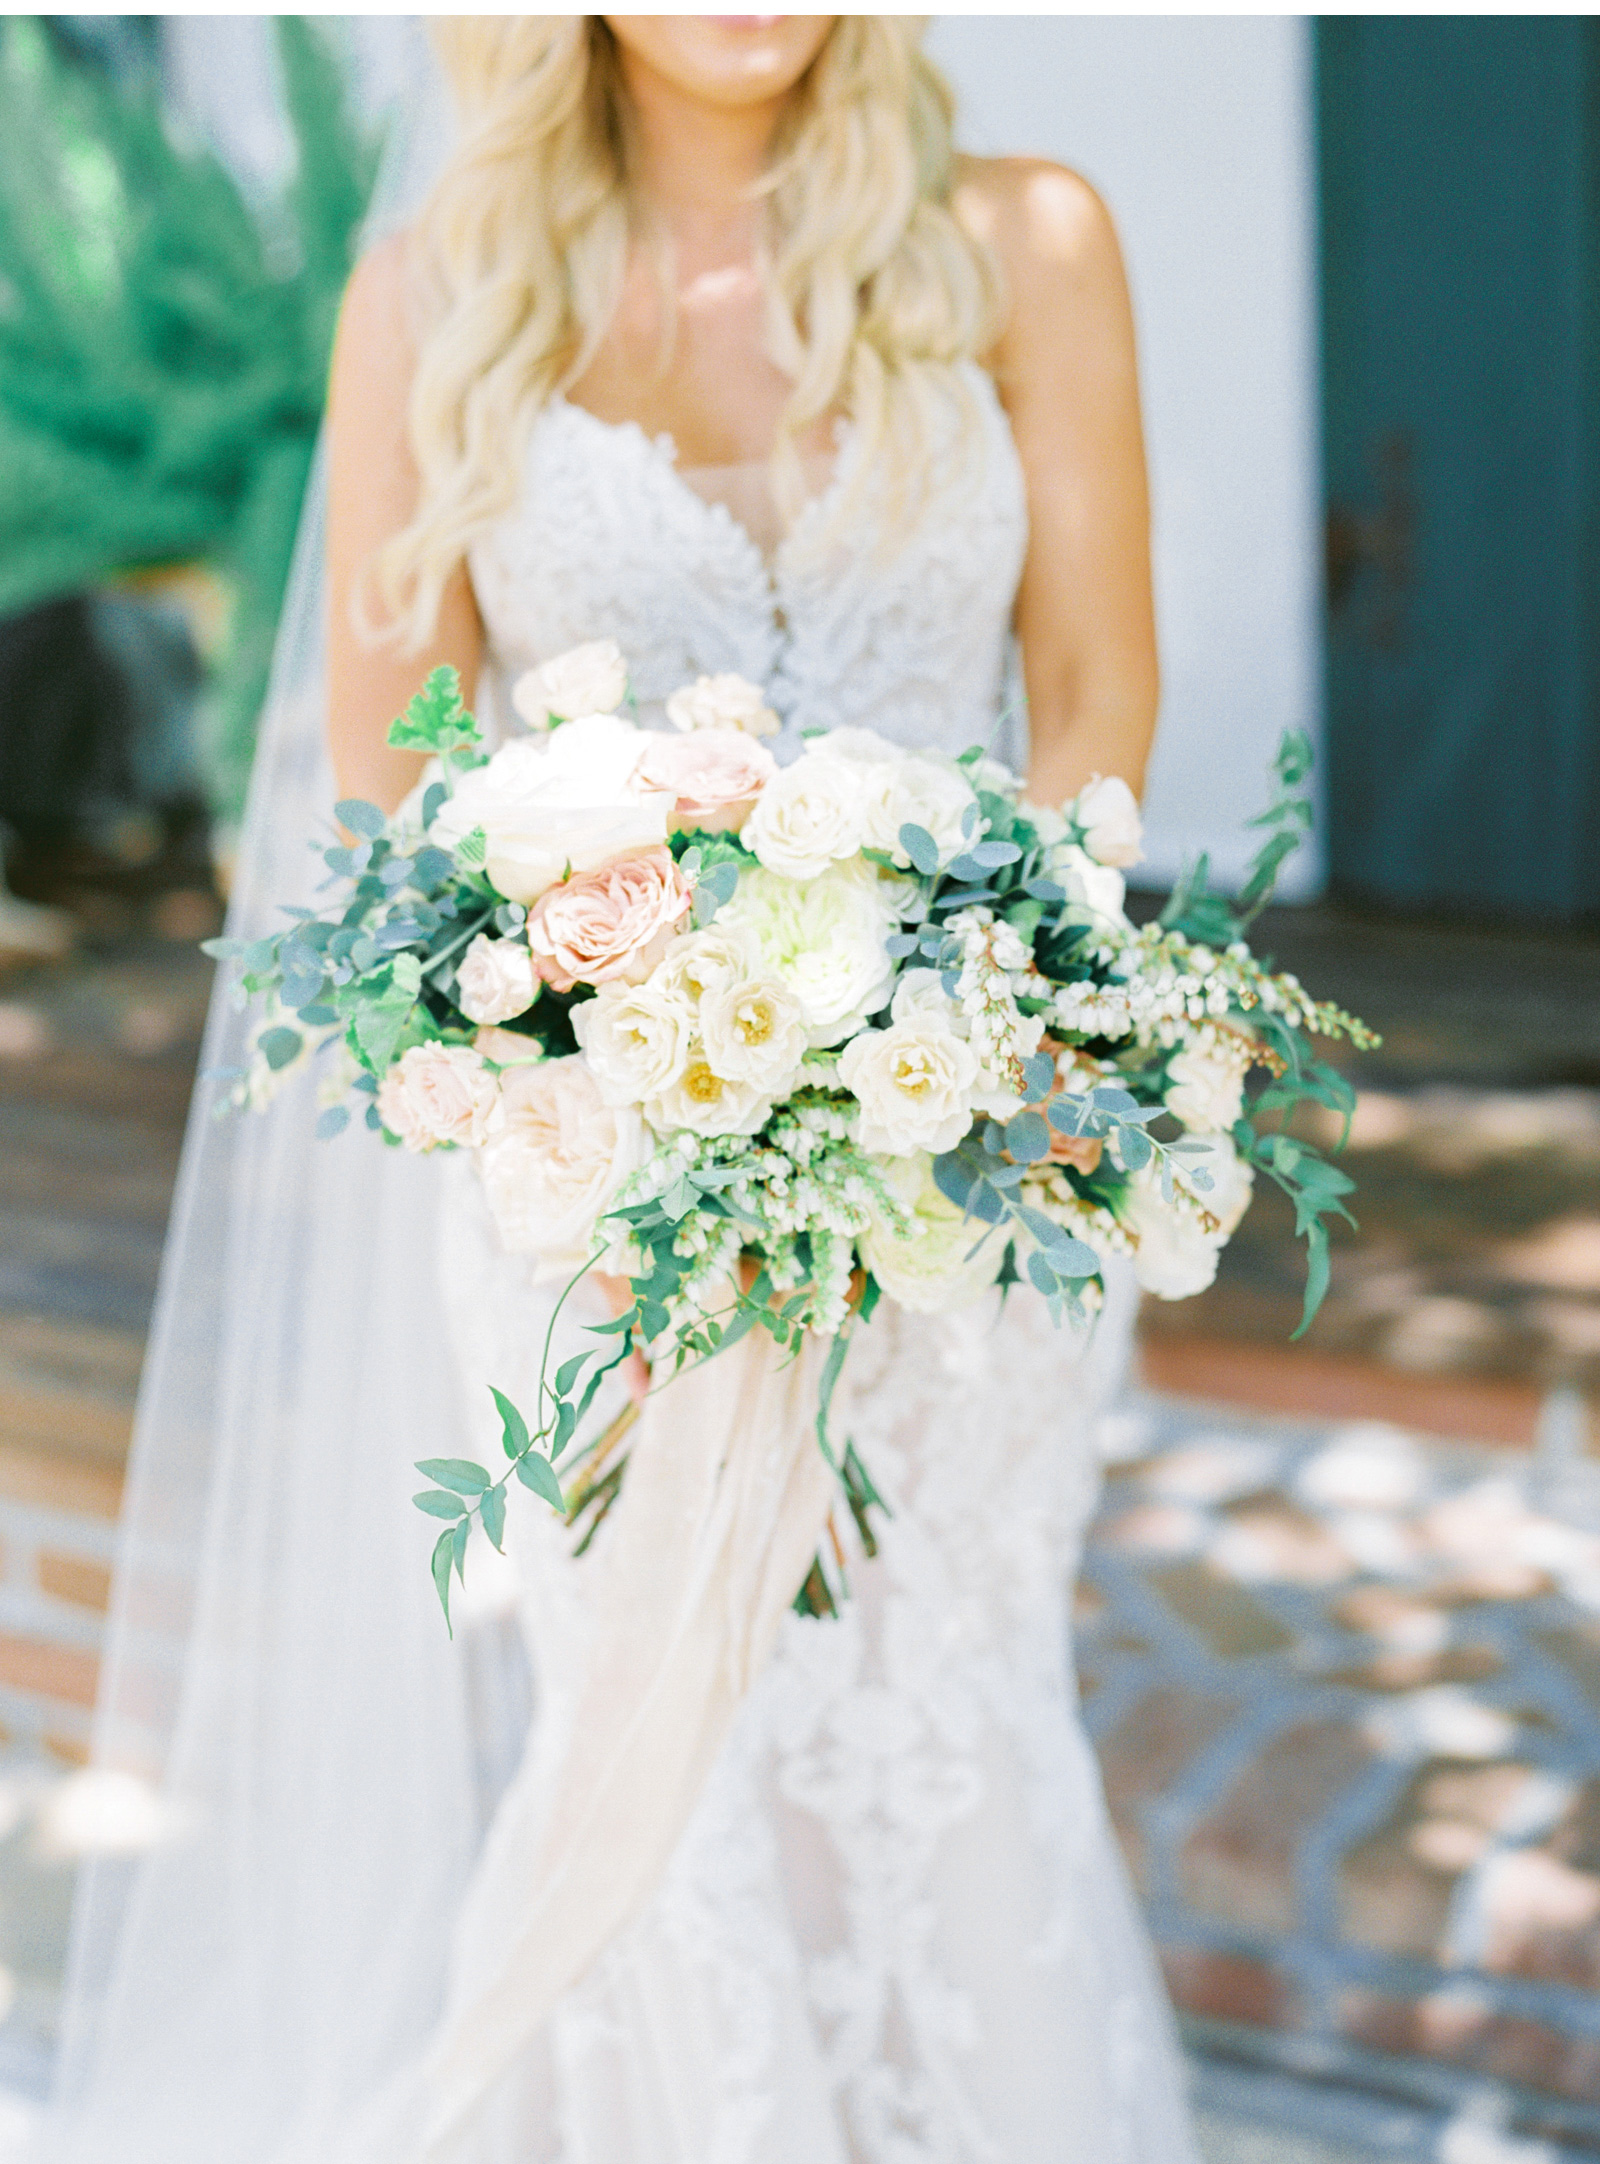 San-Juan-Capistrano-Wedding-Photographer-Southern-California-Wedding-Venues-Malibu-Wedding-Photographer-Natalie-Schutt-Photography_07.jpg